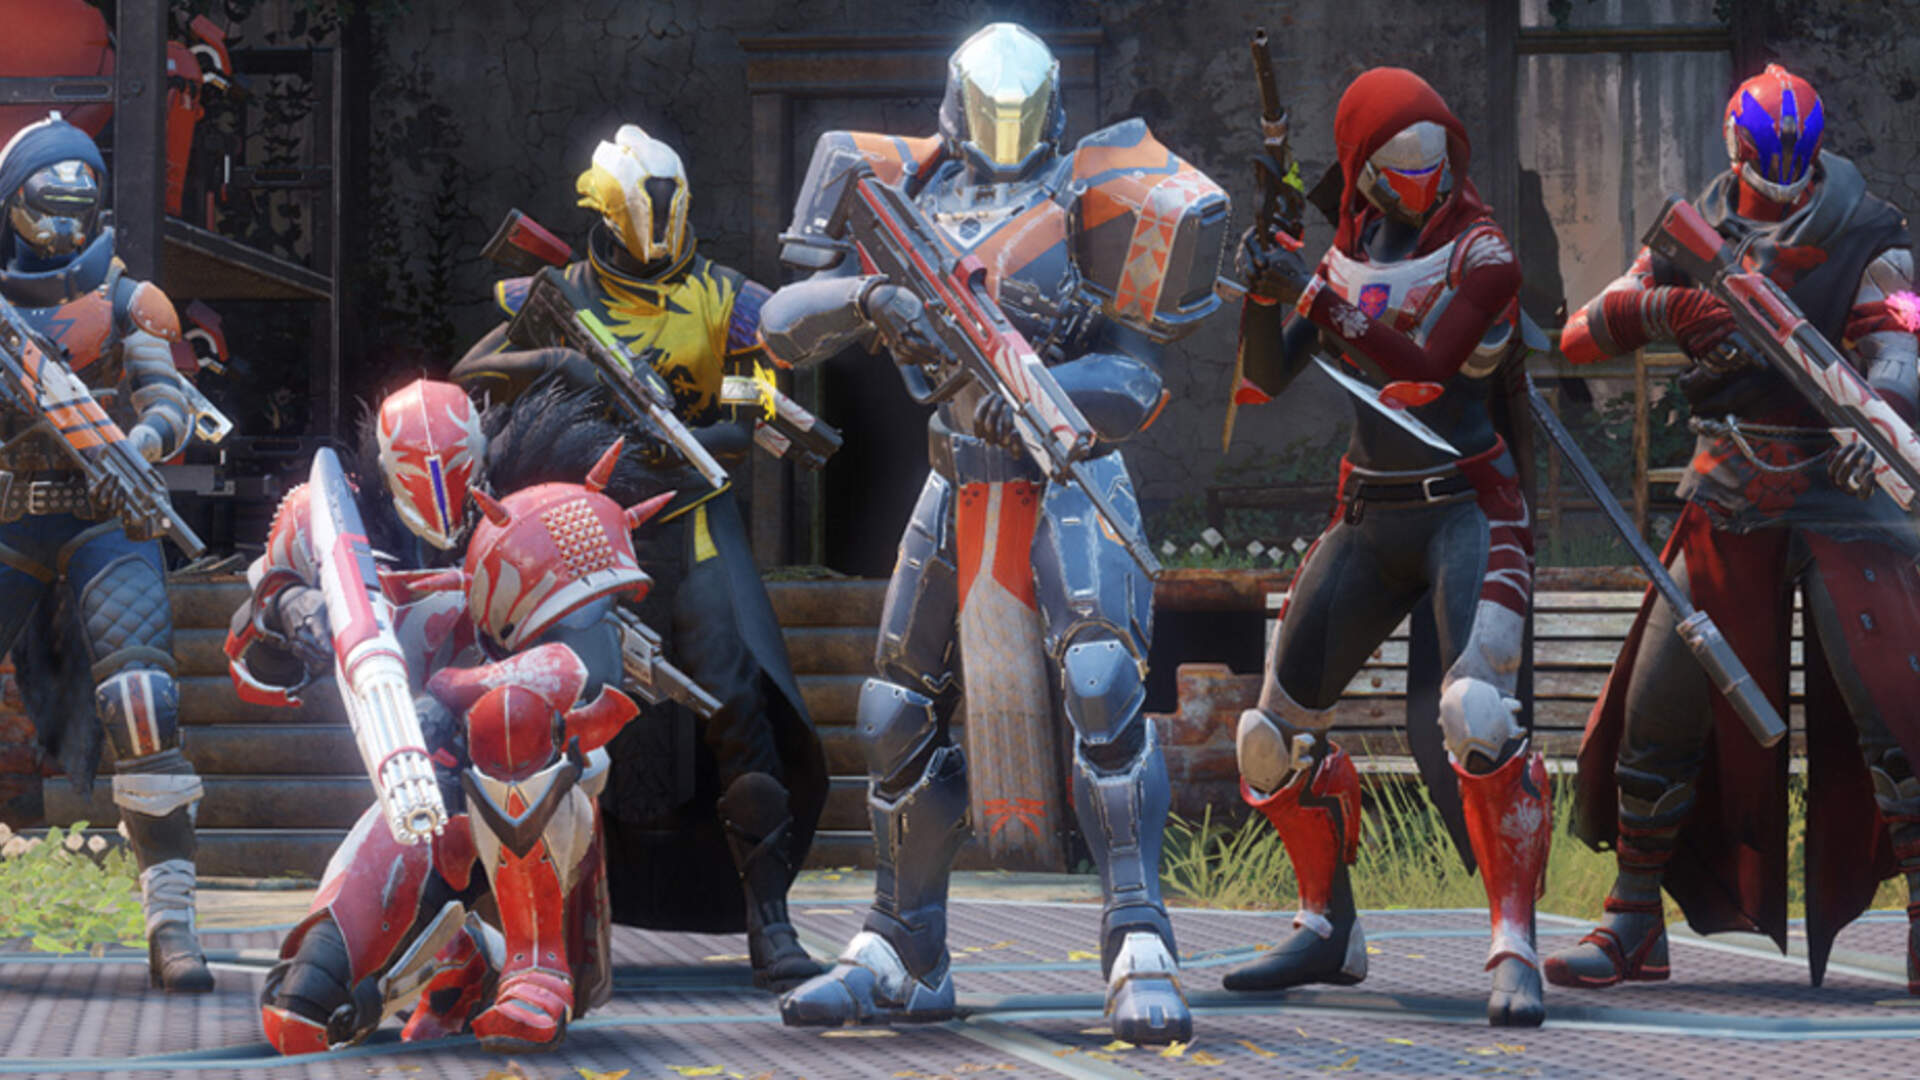 Bungie Details Destiny 2's Upcoming Open Beta (and No, Nothing Carries over into the Main Game)